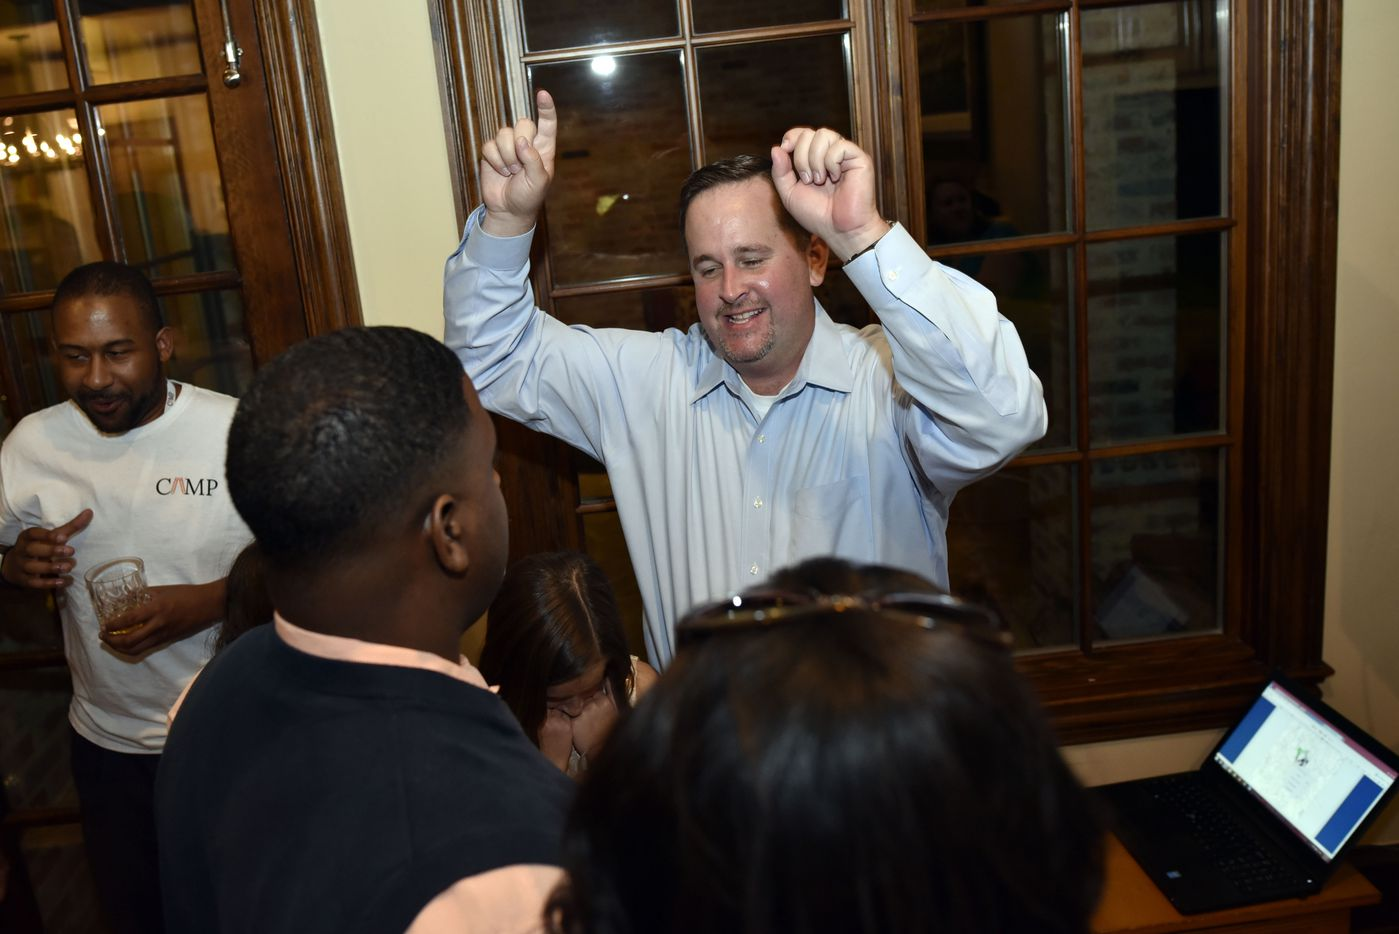 Dustin Marshall, candidate for DISD District 2, reacts after viewing updated numbers during the watch party.